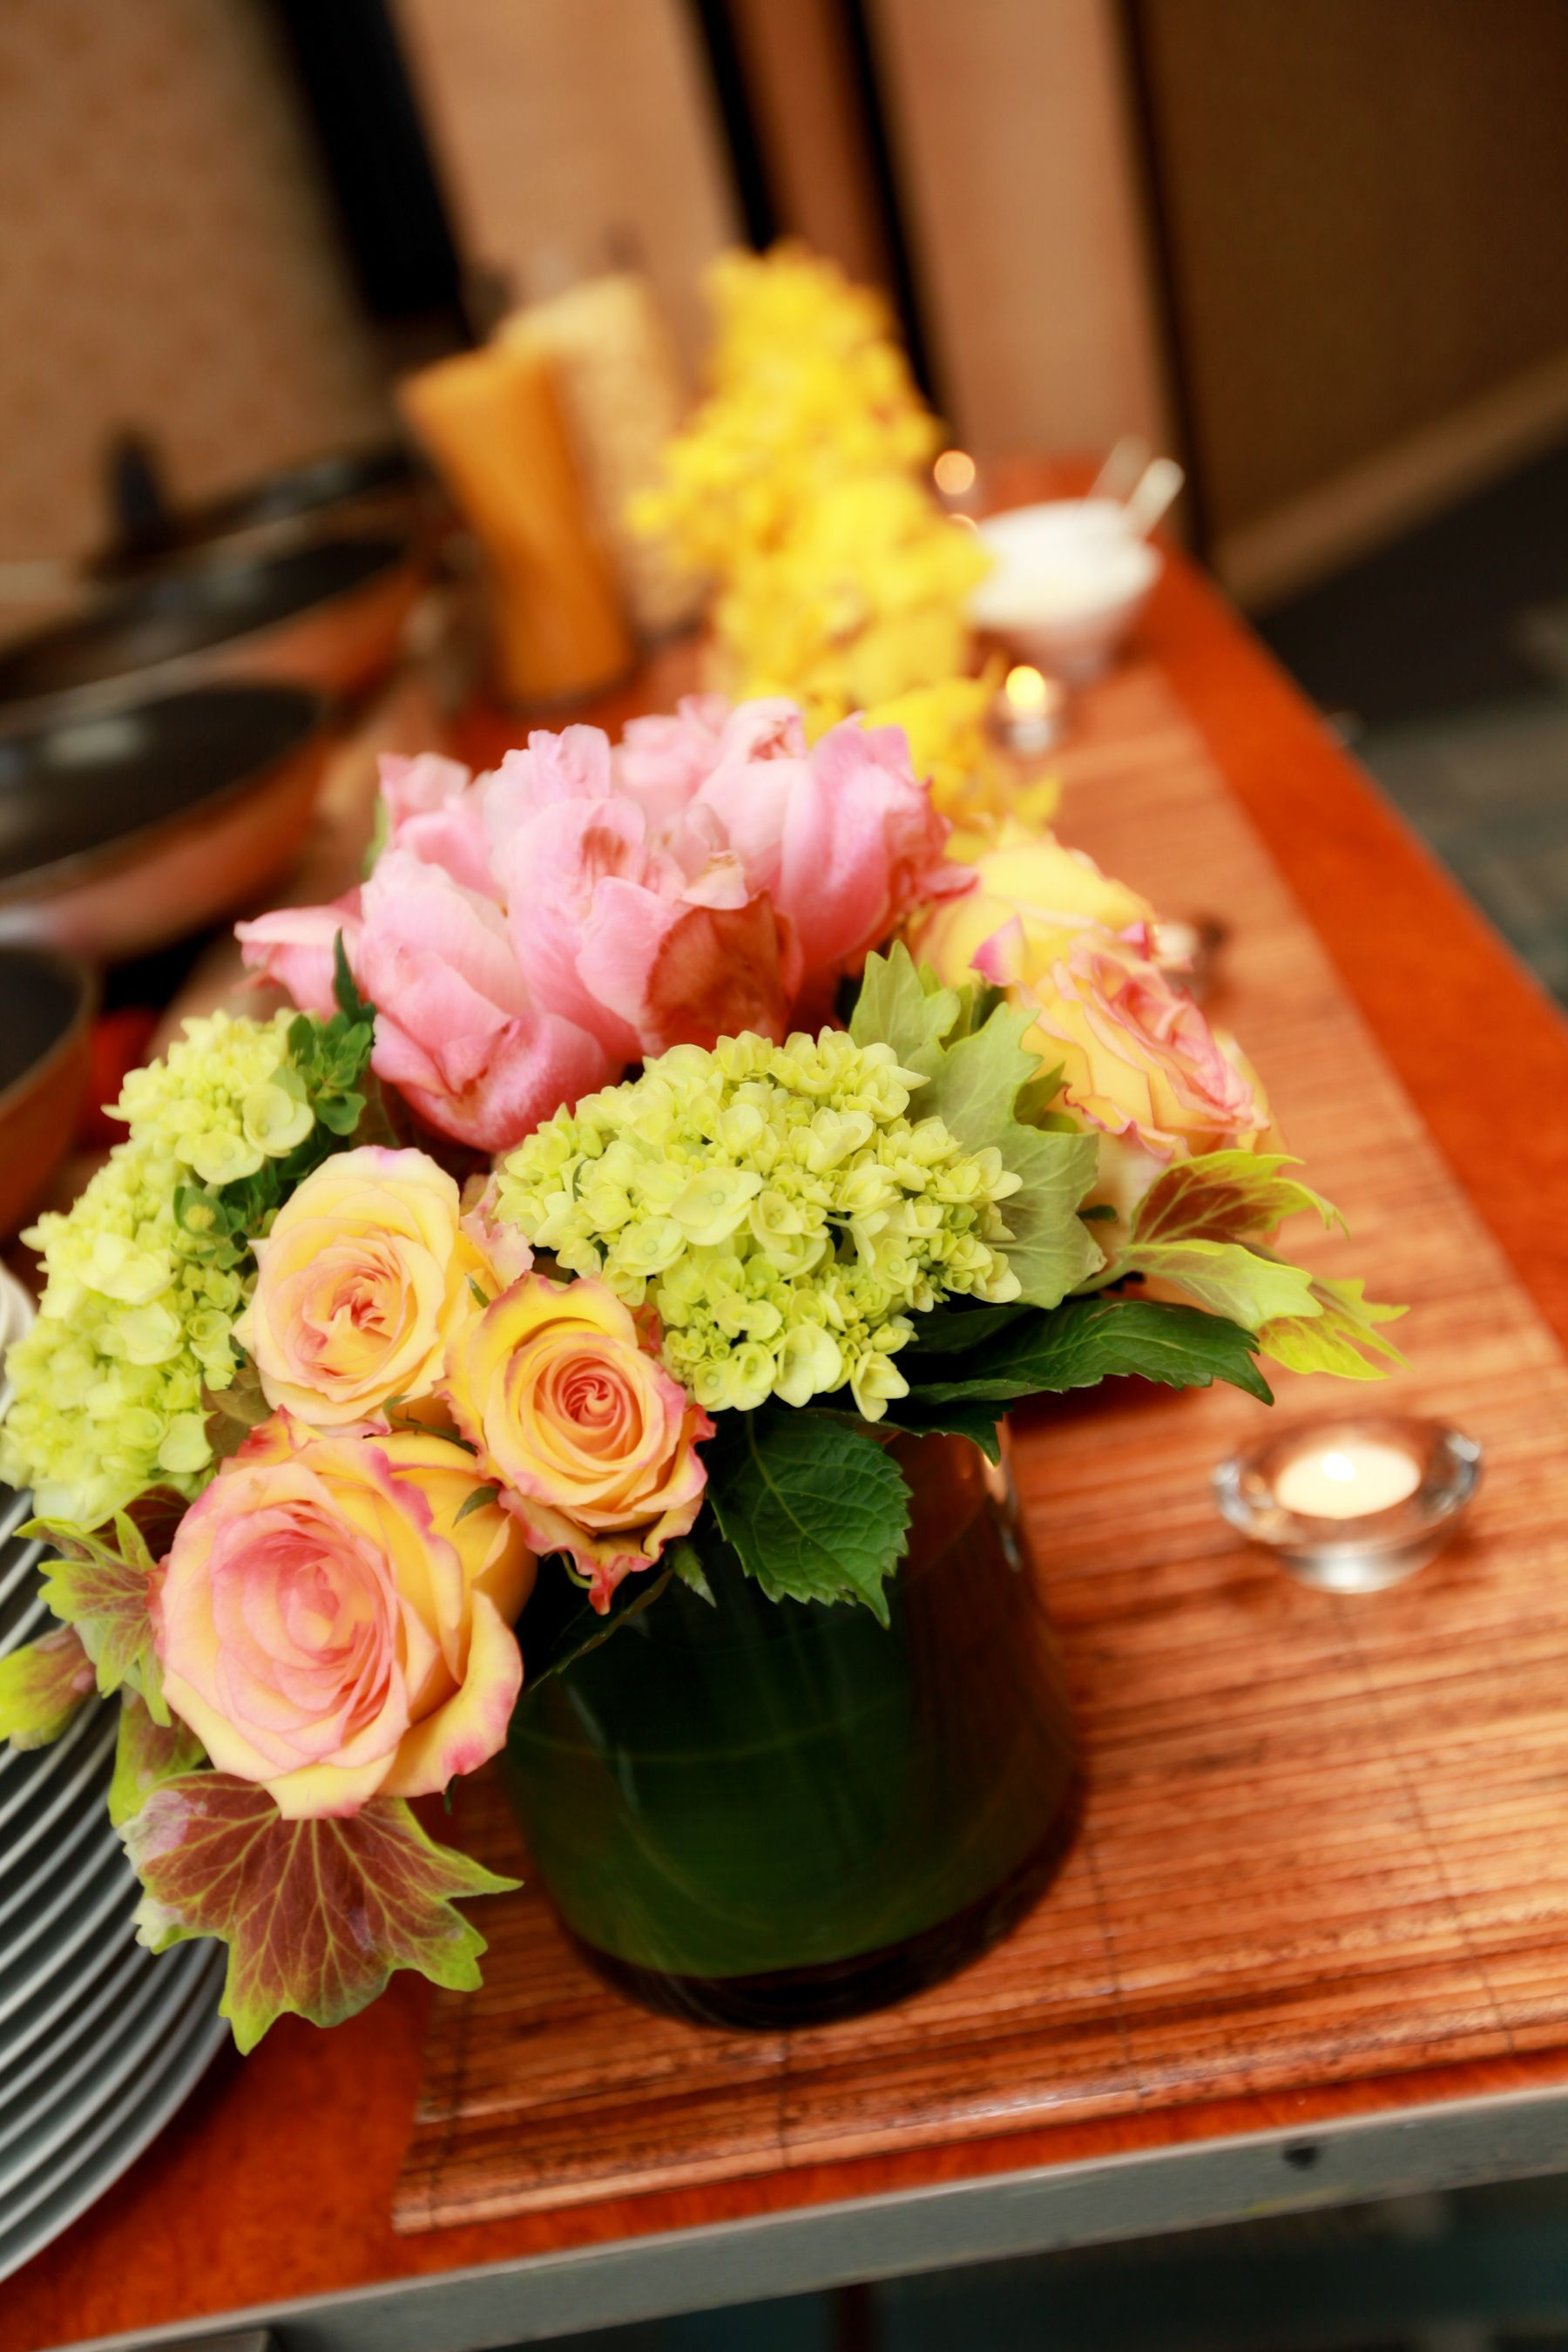 Rehearsal dinner floral arrangement wedding ideas for Dinner table flower arrangements